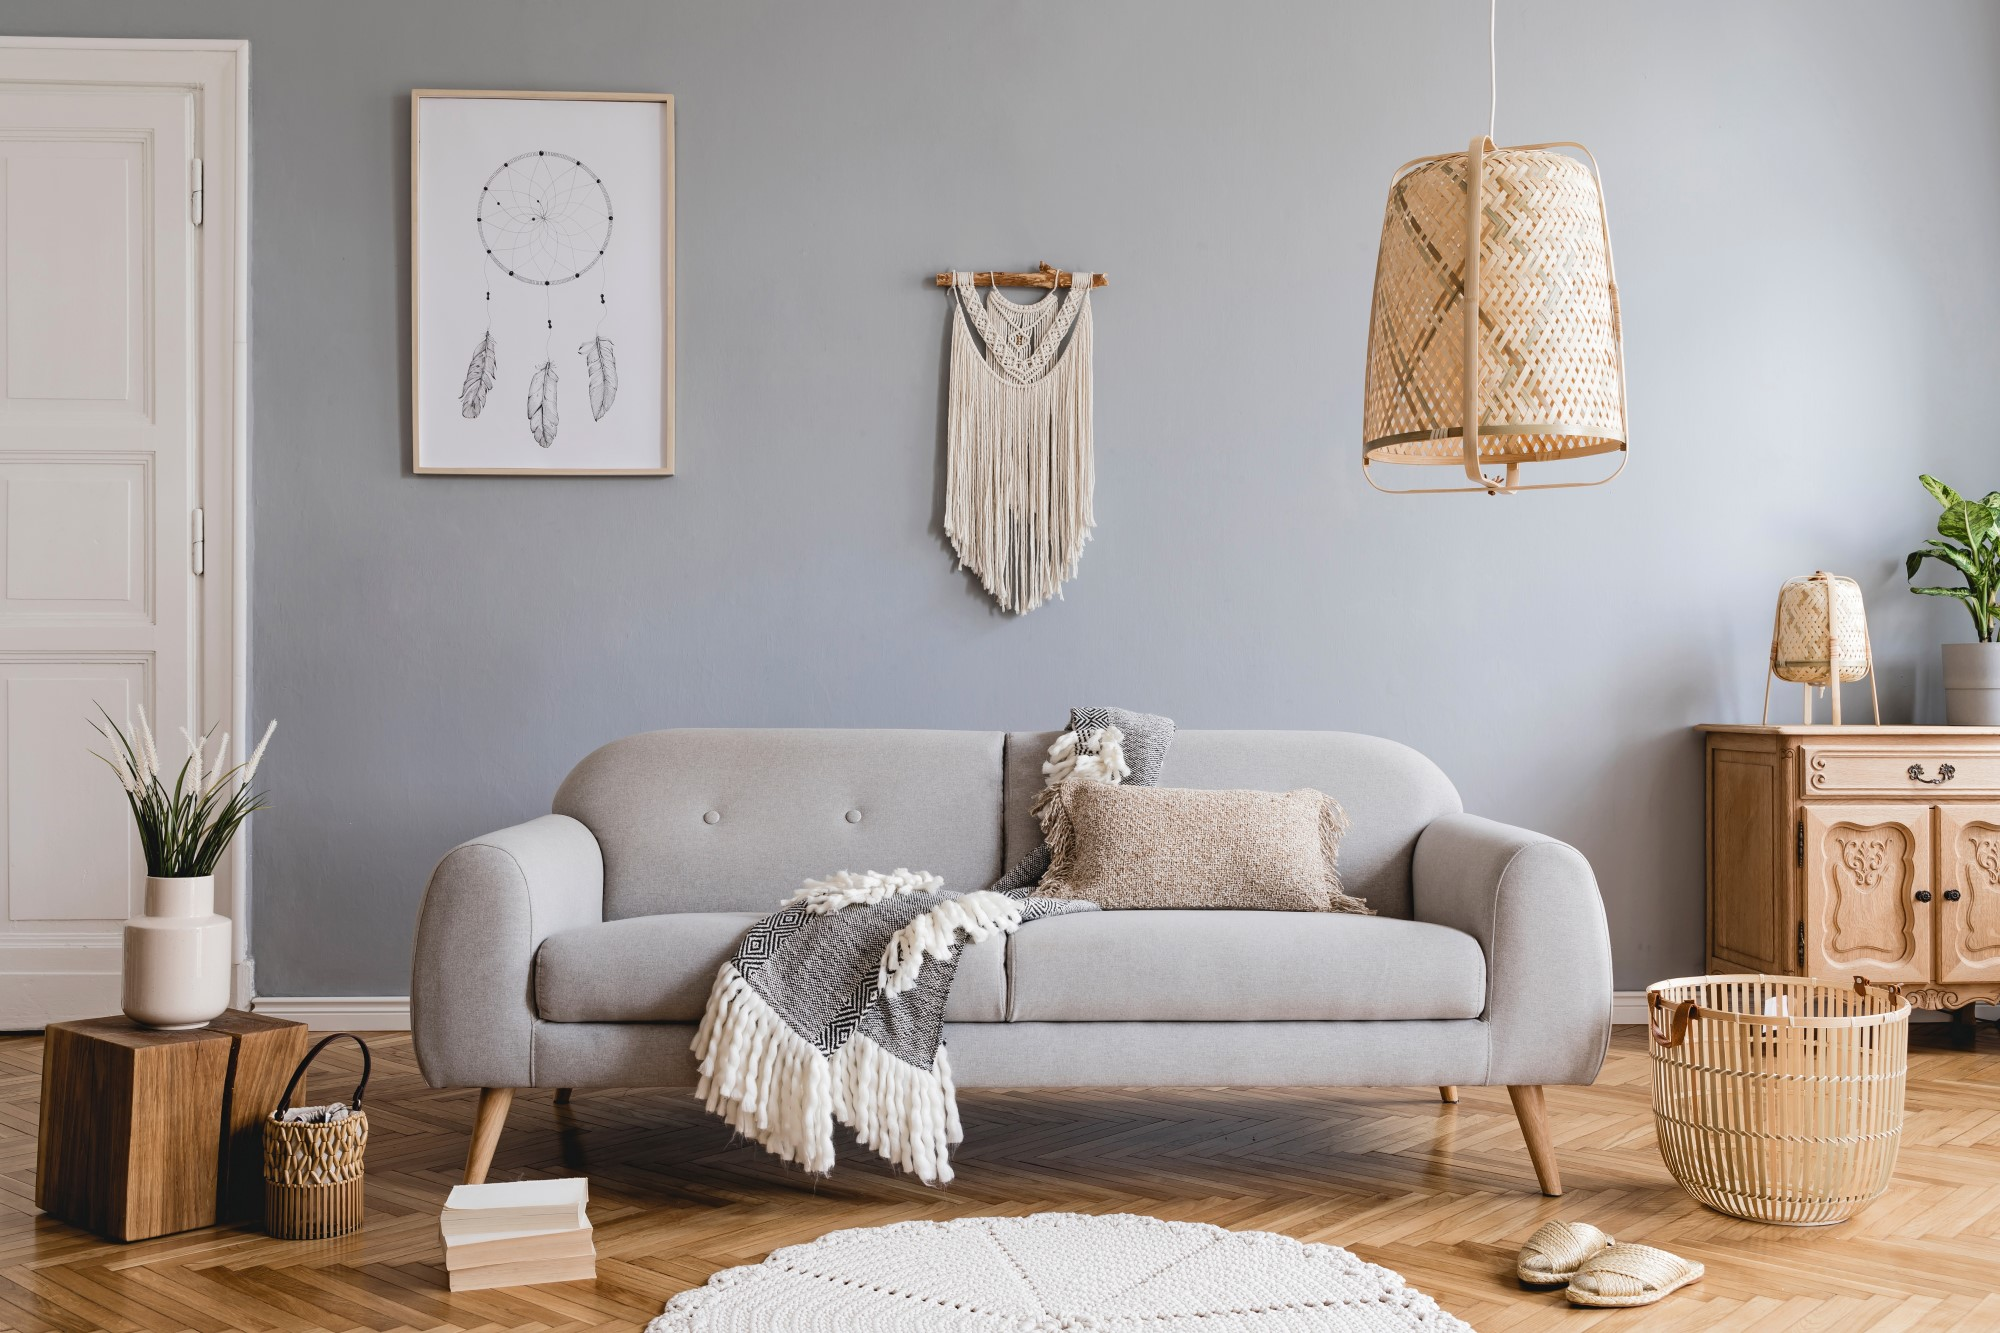 Top 5 must-have furniture pieces for your new home | Donnybrae